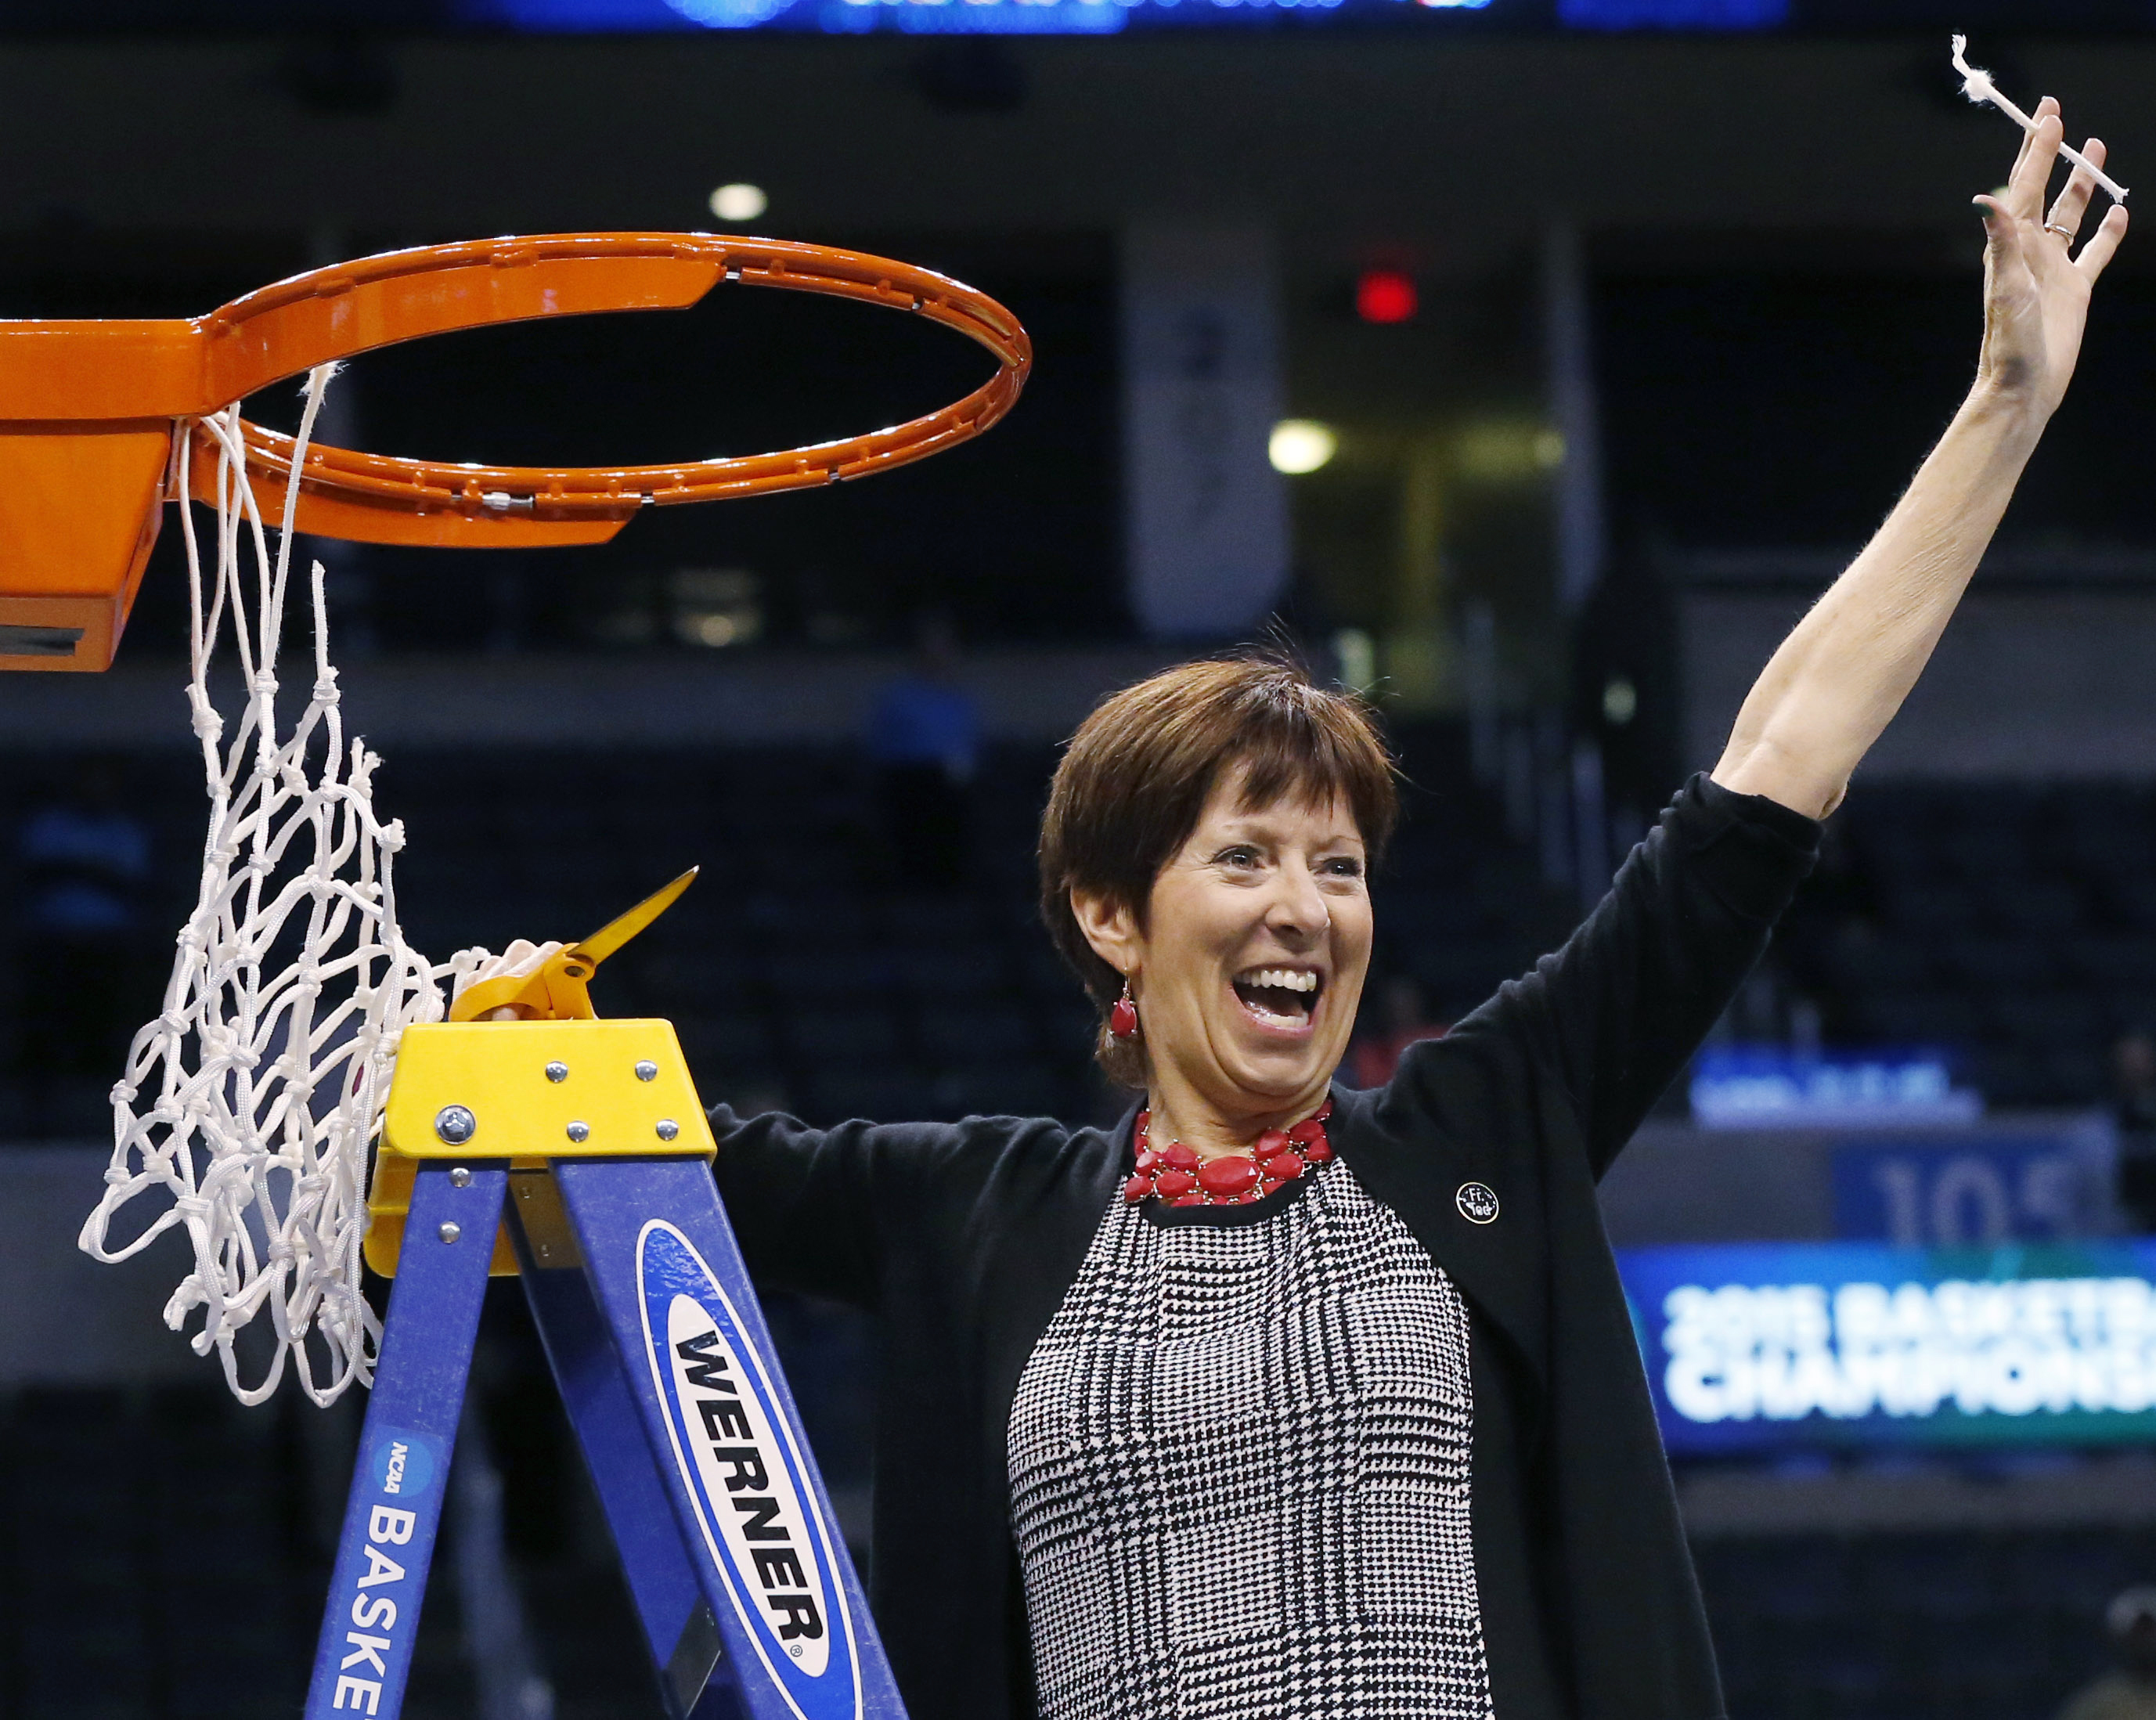 FILE - In this March 29, 2015, file photo, Notre Dame coach Muffet McGraw holds up part of the net after Notre Dame defeated Baylor 77-68 in a regional final in the NCAA women's college basketball tournament, in Oklahoma City. Notre Dame won a national ch